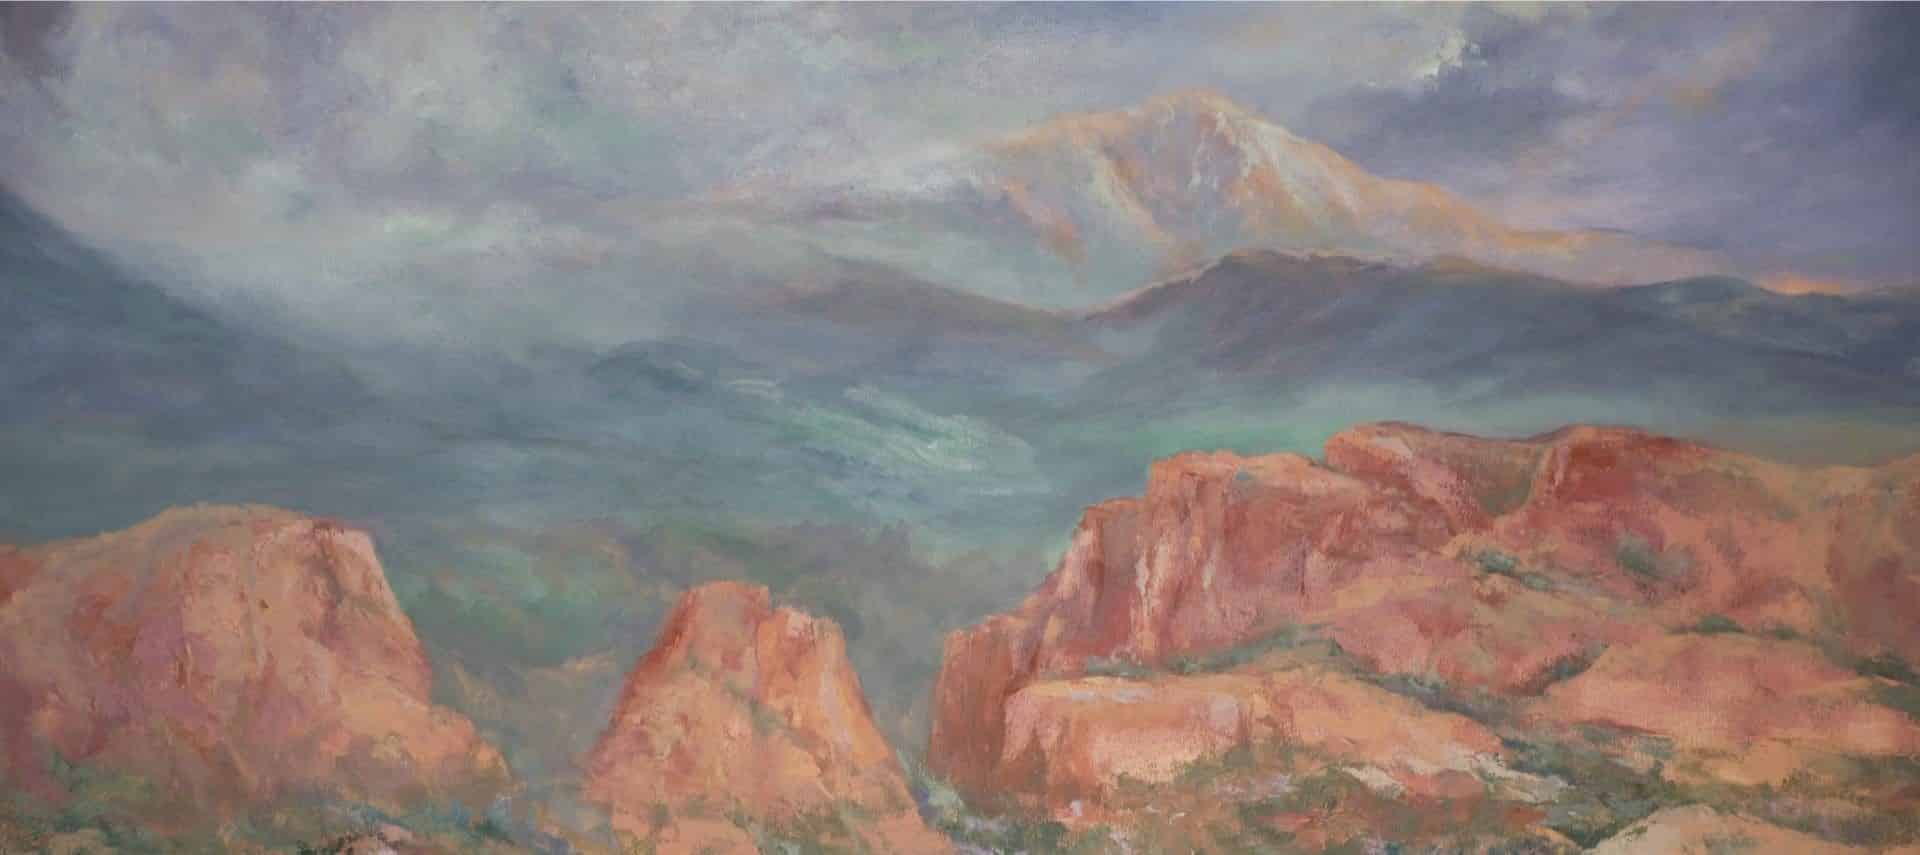 Painting of a mountain with snow in the background and large red rock formations in the foreground